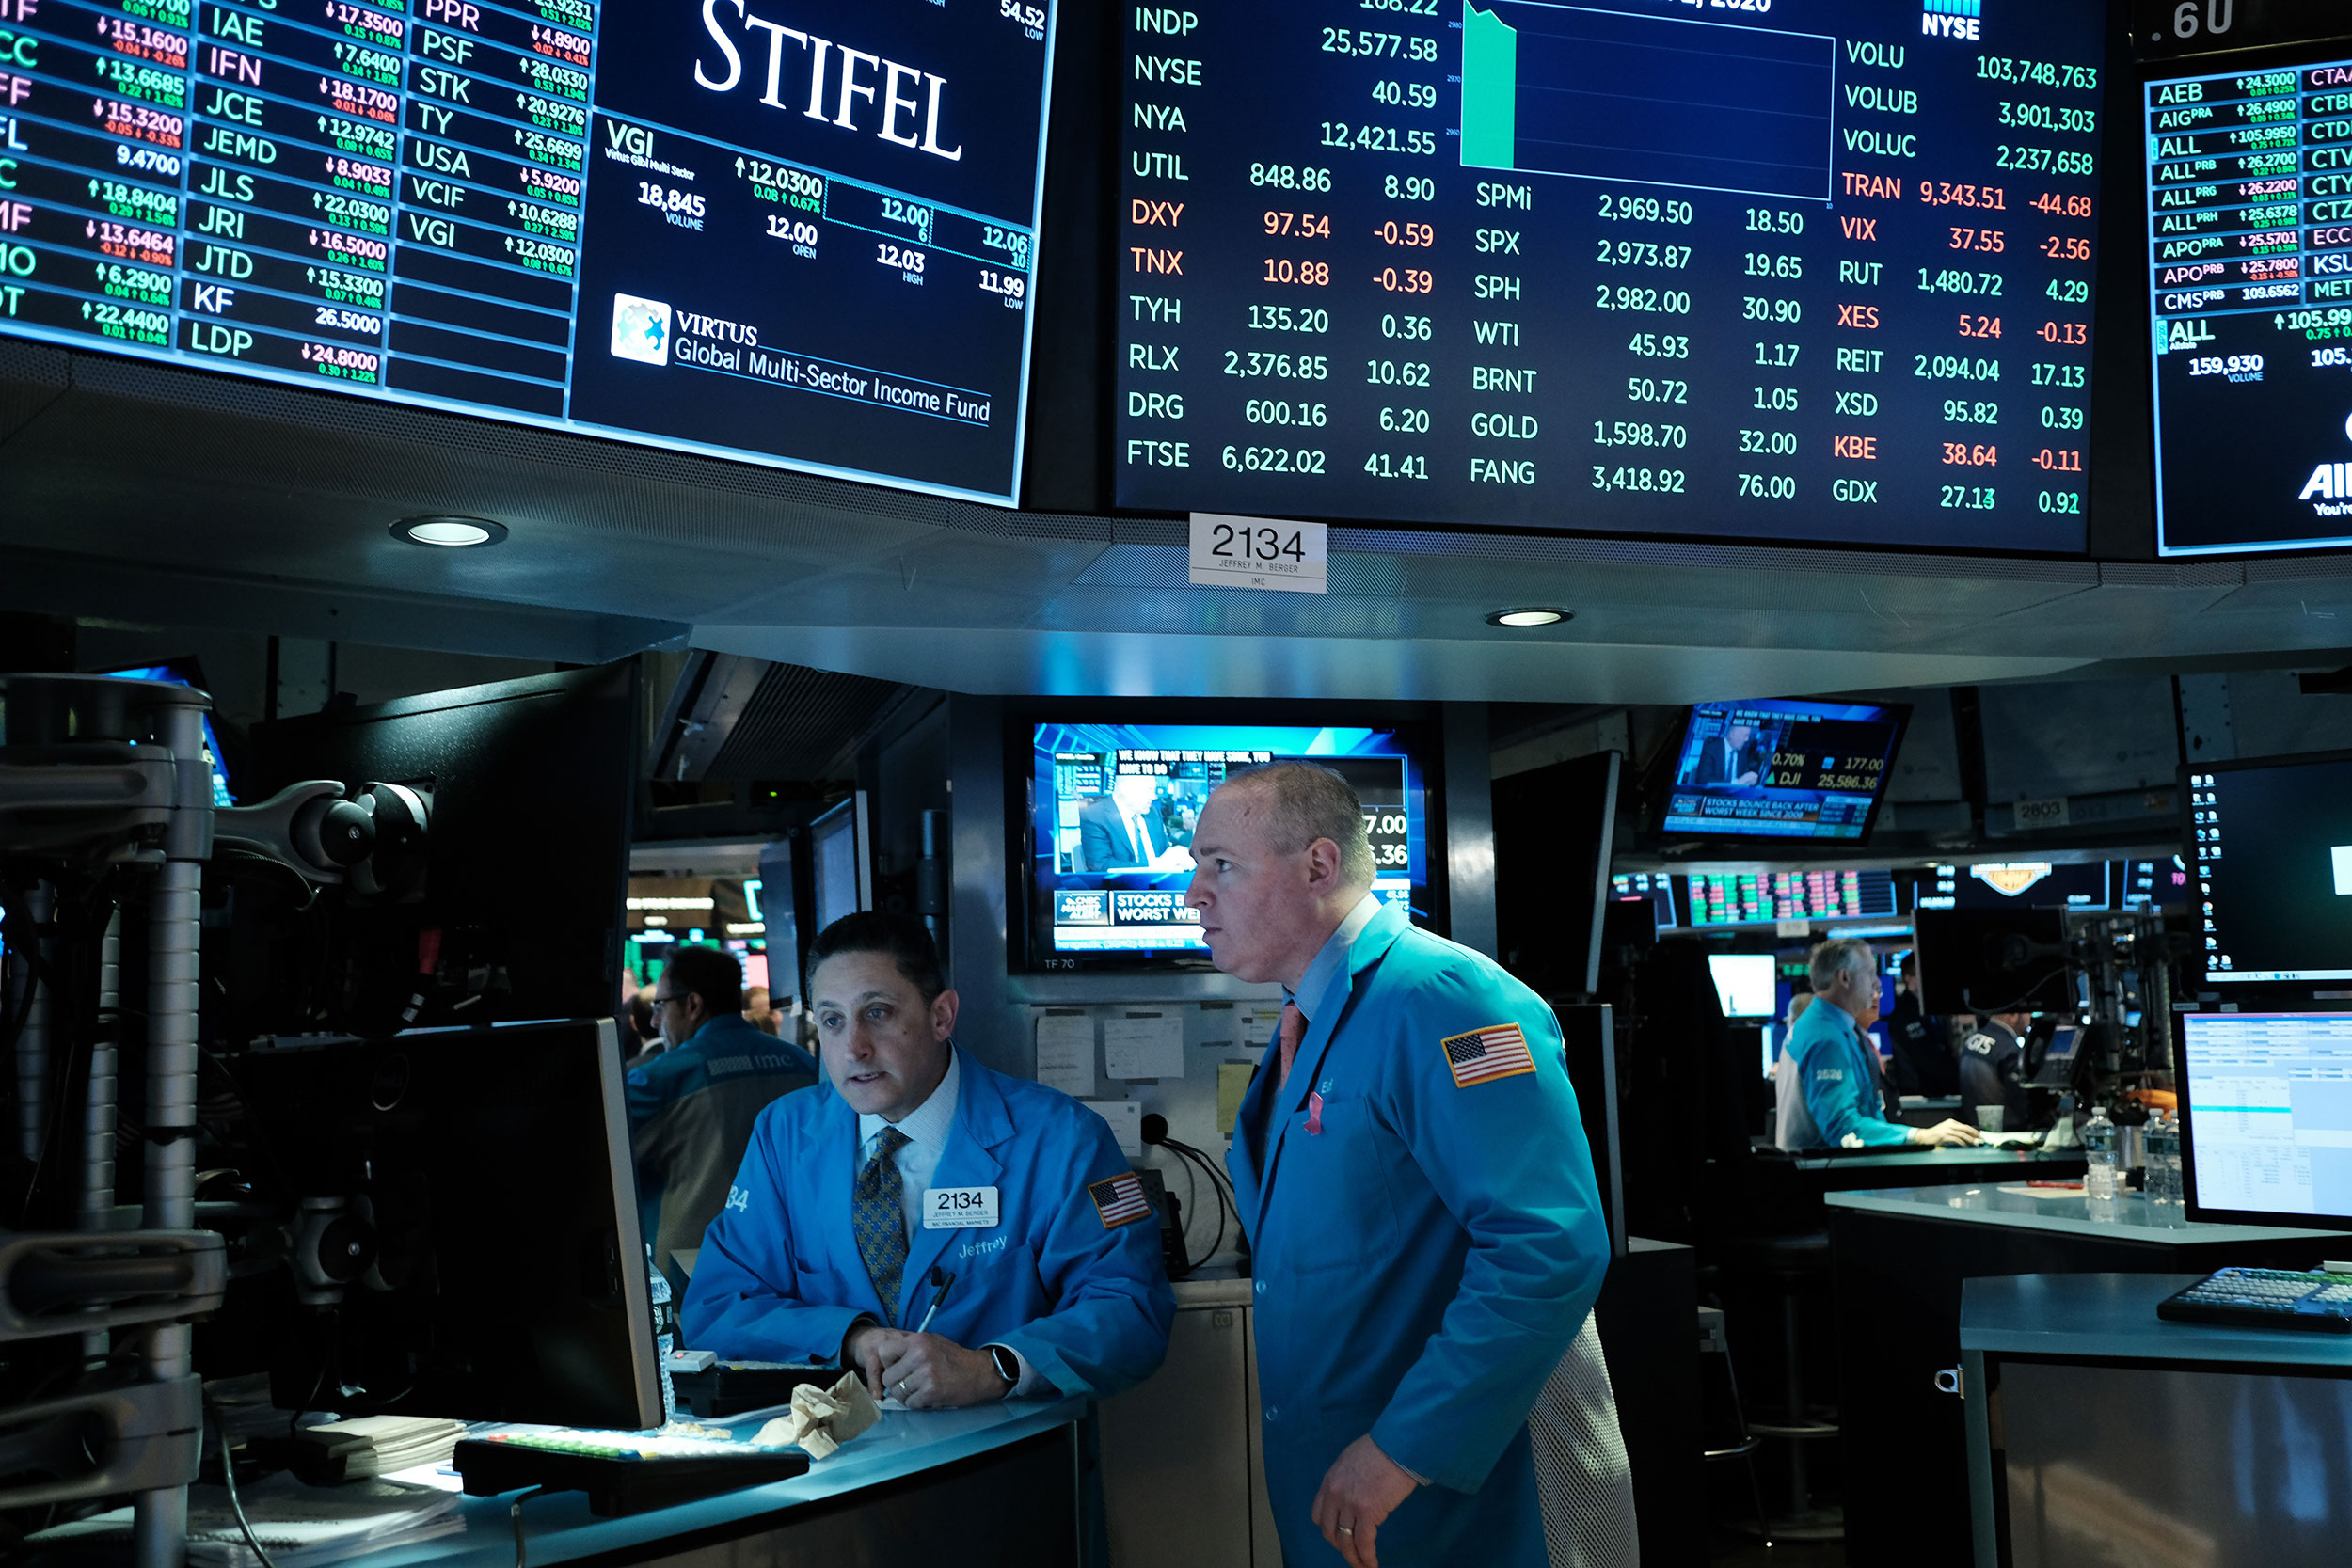 Traders work at the New York Stock Exchange on Monday, March 2.